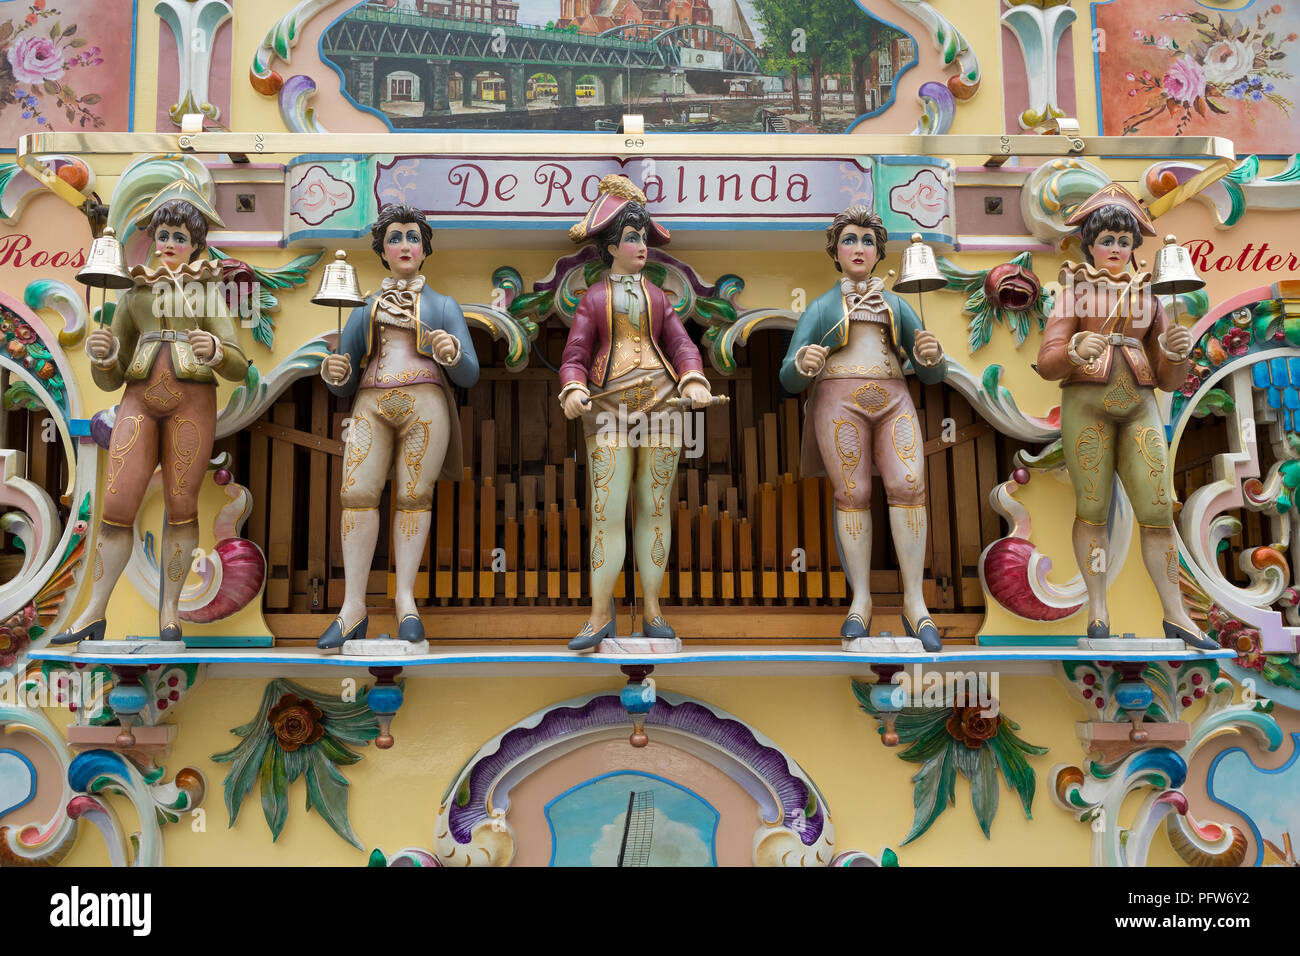 Rotterdam, Netherlands - July 7, 2018: Close up of the dolls on a traditional Dutch street barrel organ named Rosalinda - Stock Image